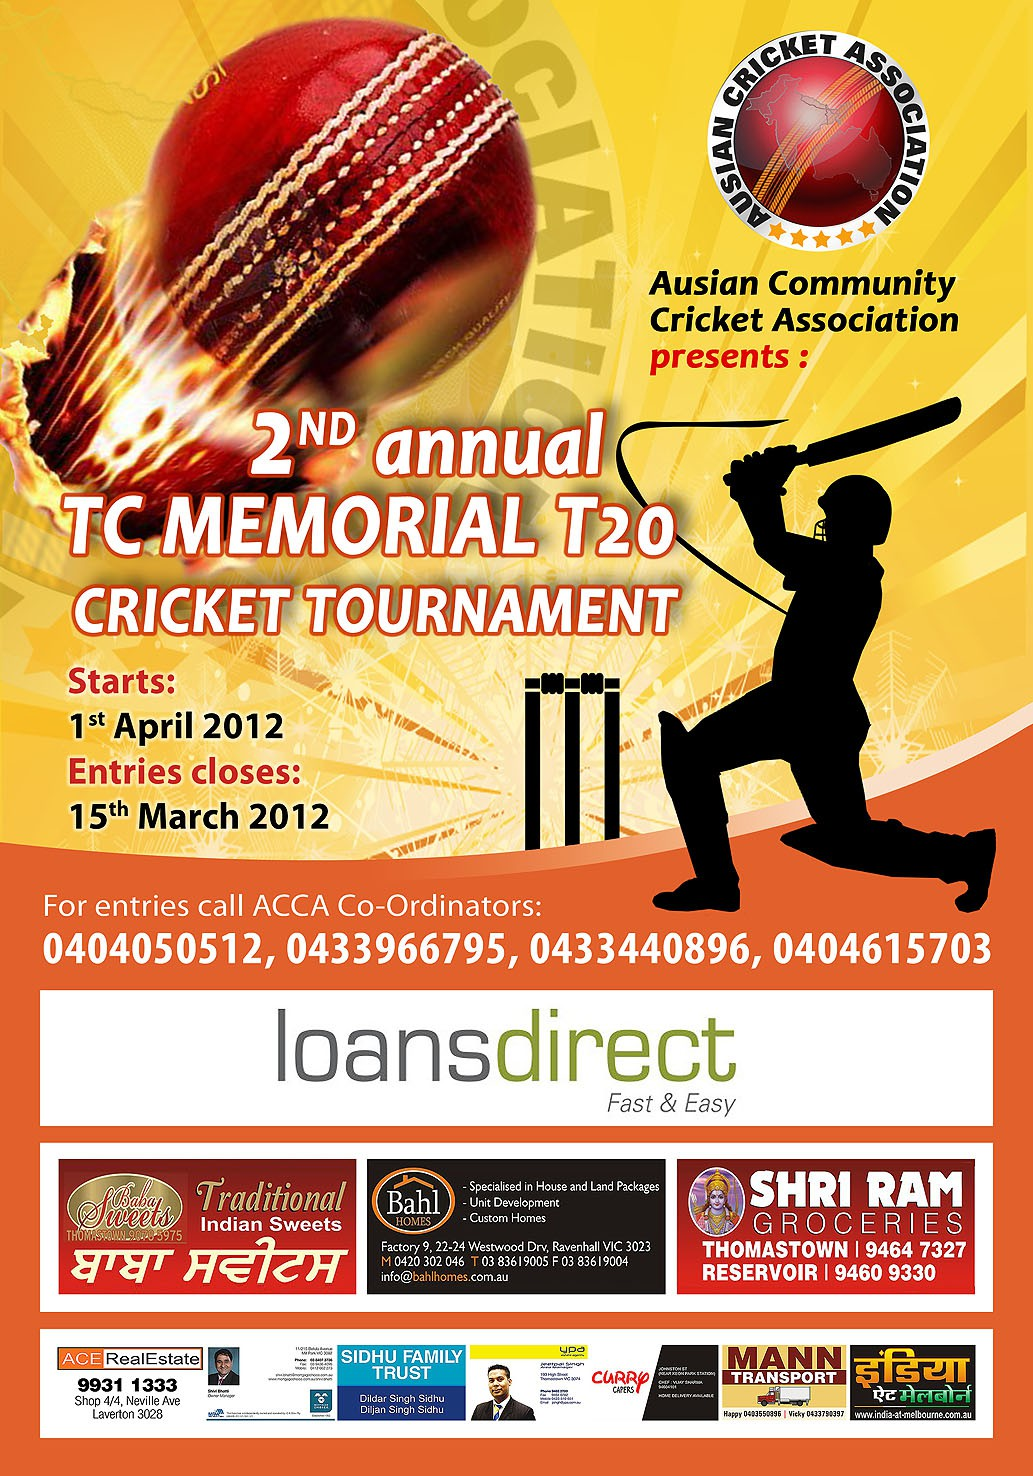 Help Ausian Community Cricket Association with a new print or packaging design